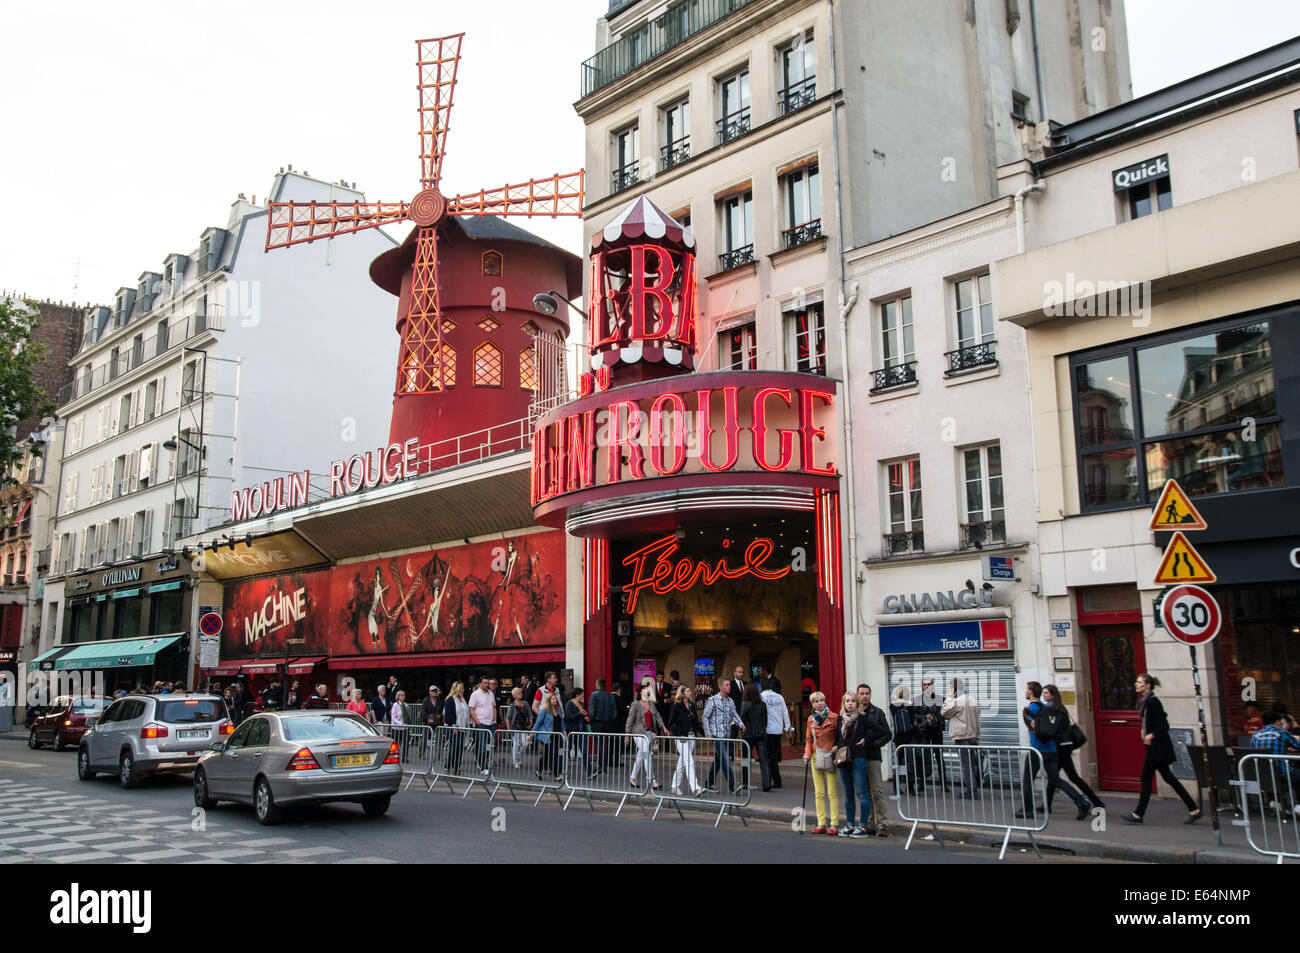 The Moulin Rouge in Paris, France - Stock Image